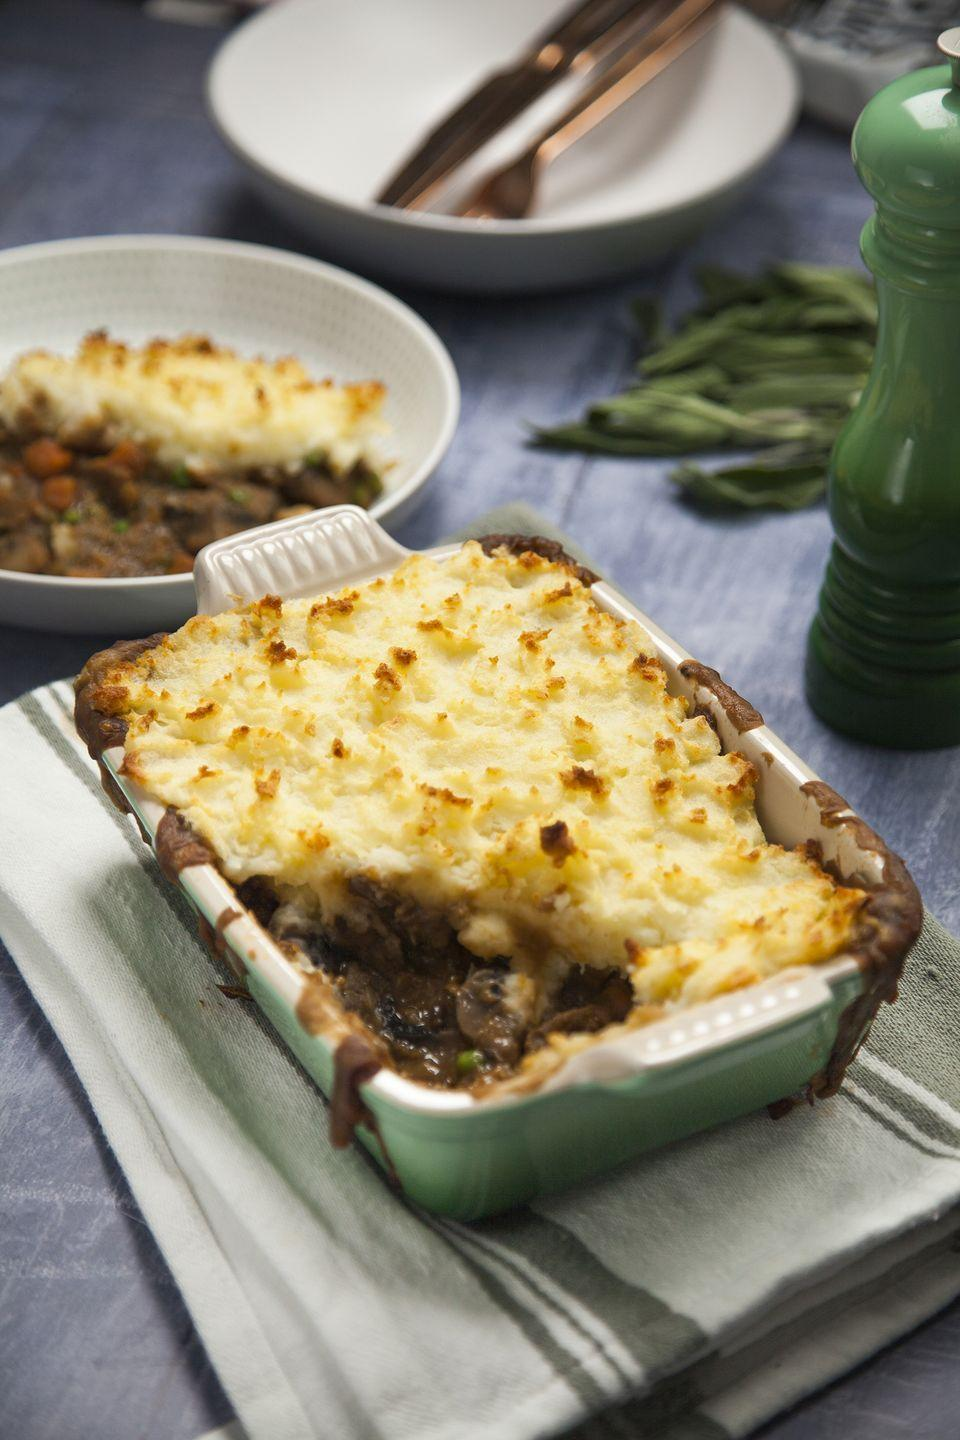 "<p>This vegan shepherd's pie is a comforting, Winter classic.</p><p><strong>Recipe: <a href=""https://www.goodhousekeeping.com/uk/food/recipes/a25599963/vegan-shepherds-pie/"" rel=""nofollow noopener"" target=""_blank"" data-ylk=""slk:Vegan Shepherd's Pie"" class=""link rapid-noclick-resp"">Vegan Shepherd's Pie </a></strong></p>"